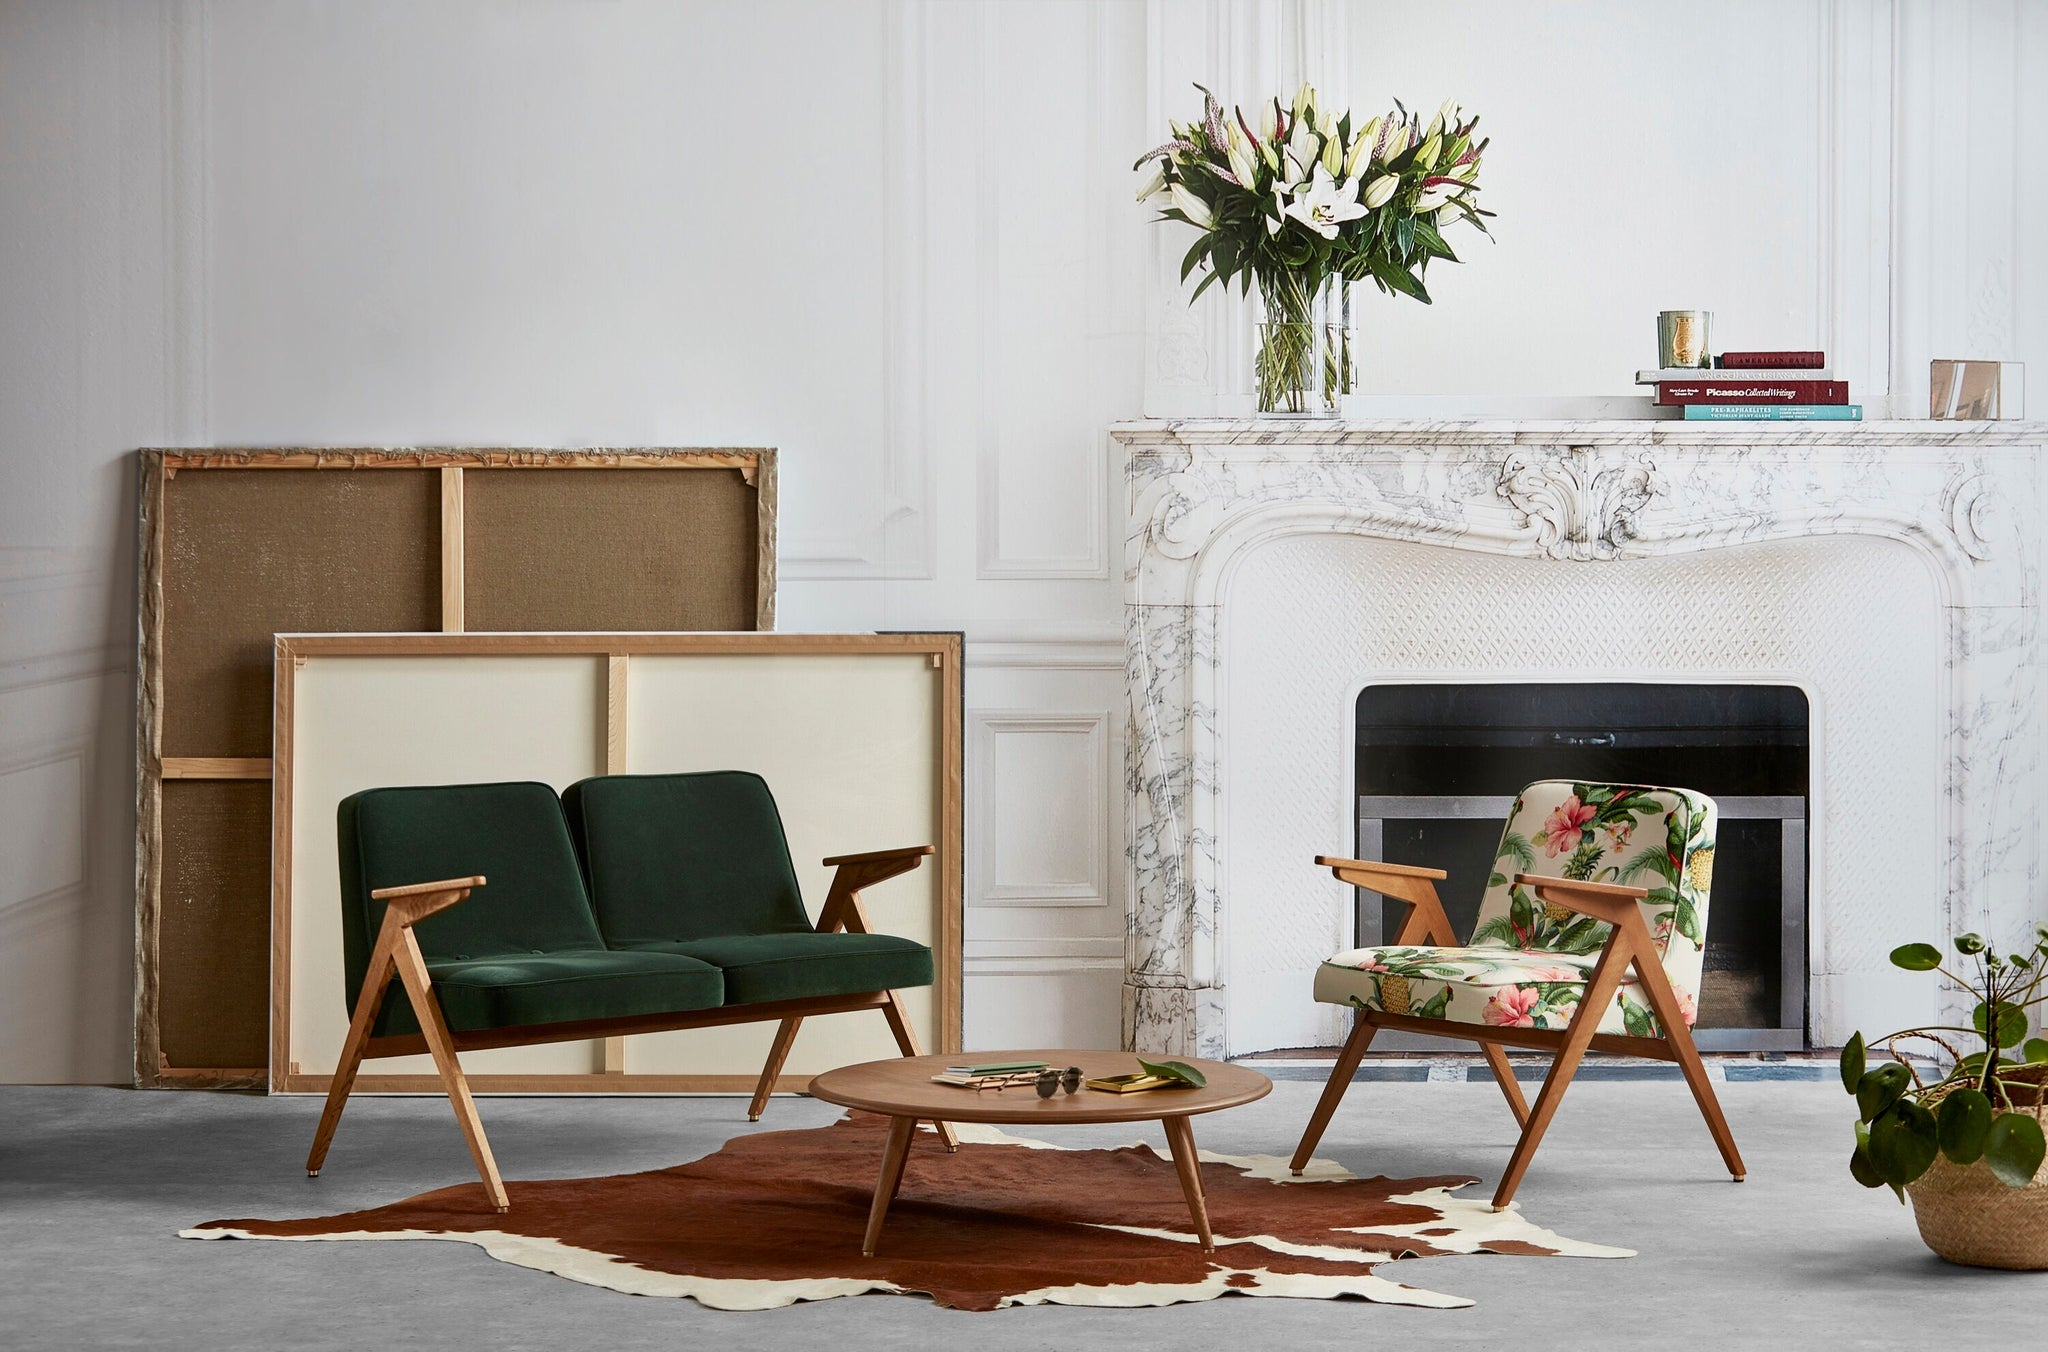 Bunny Series 2 Seater - Mid Century Design